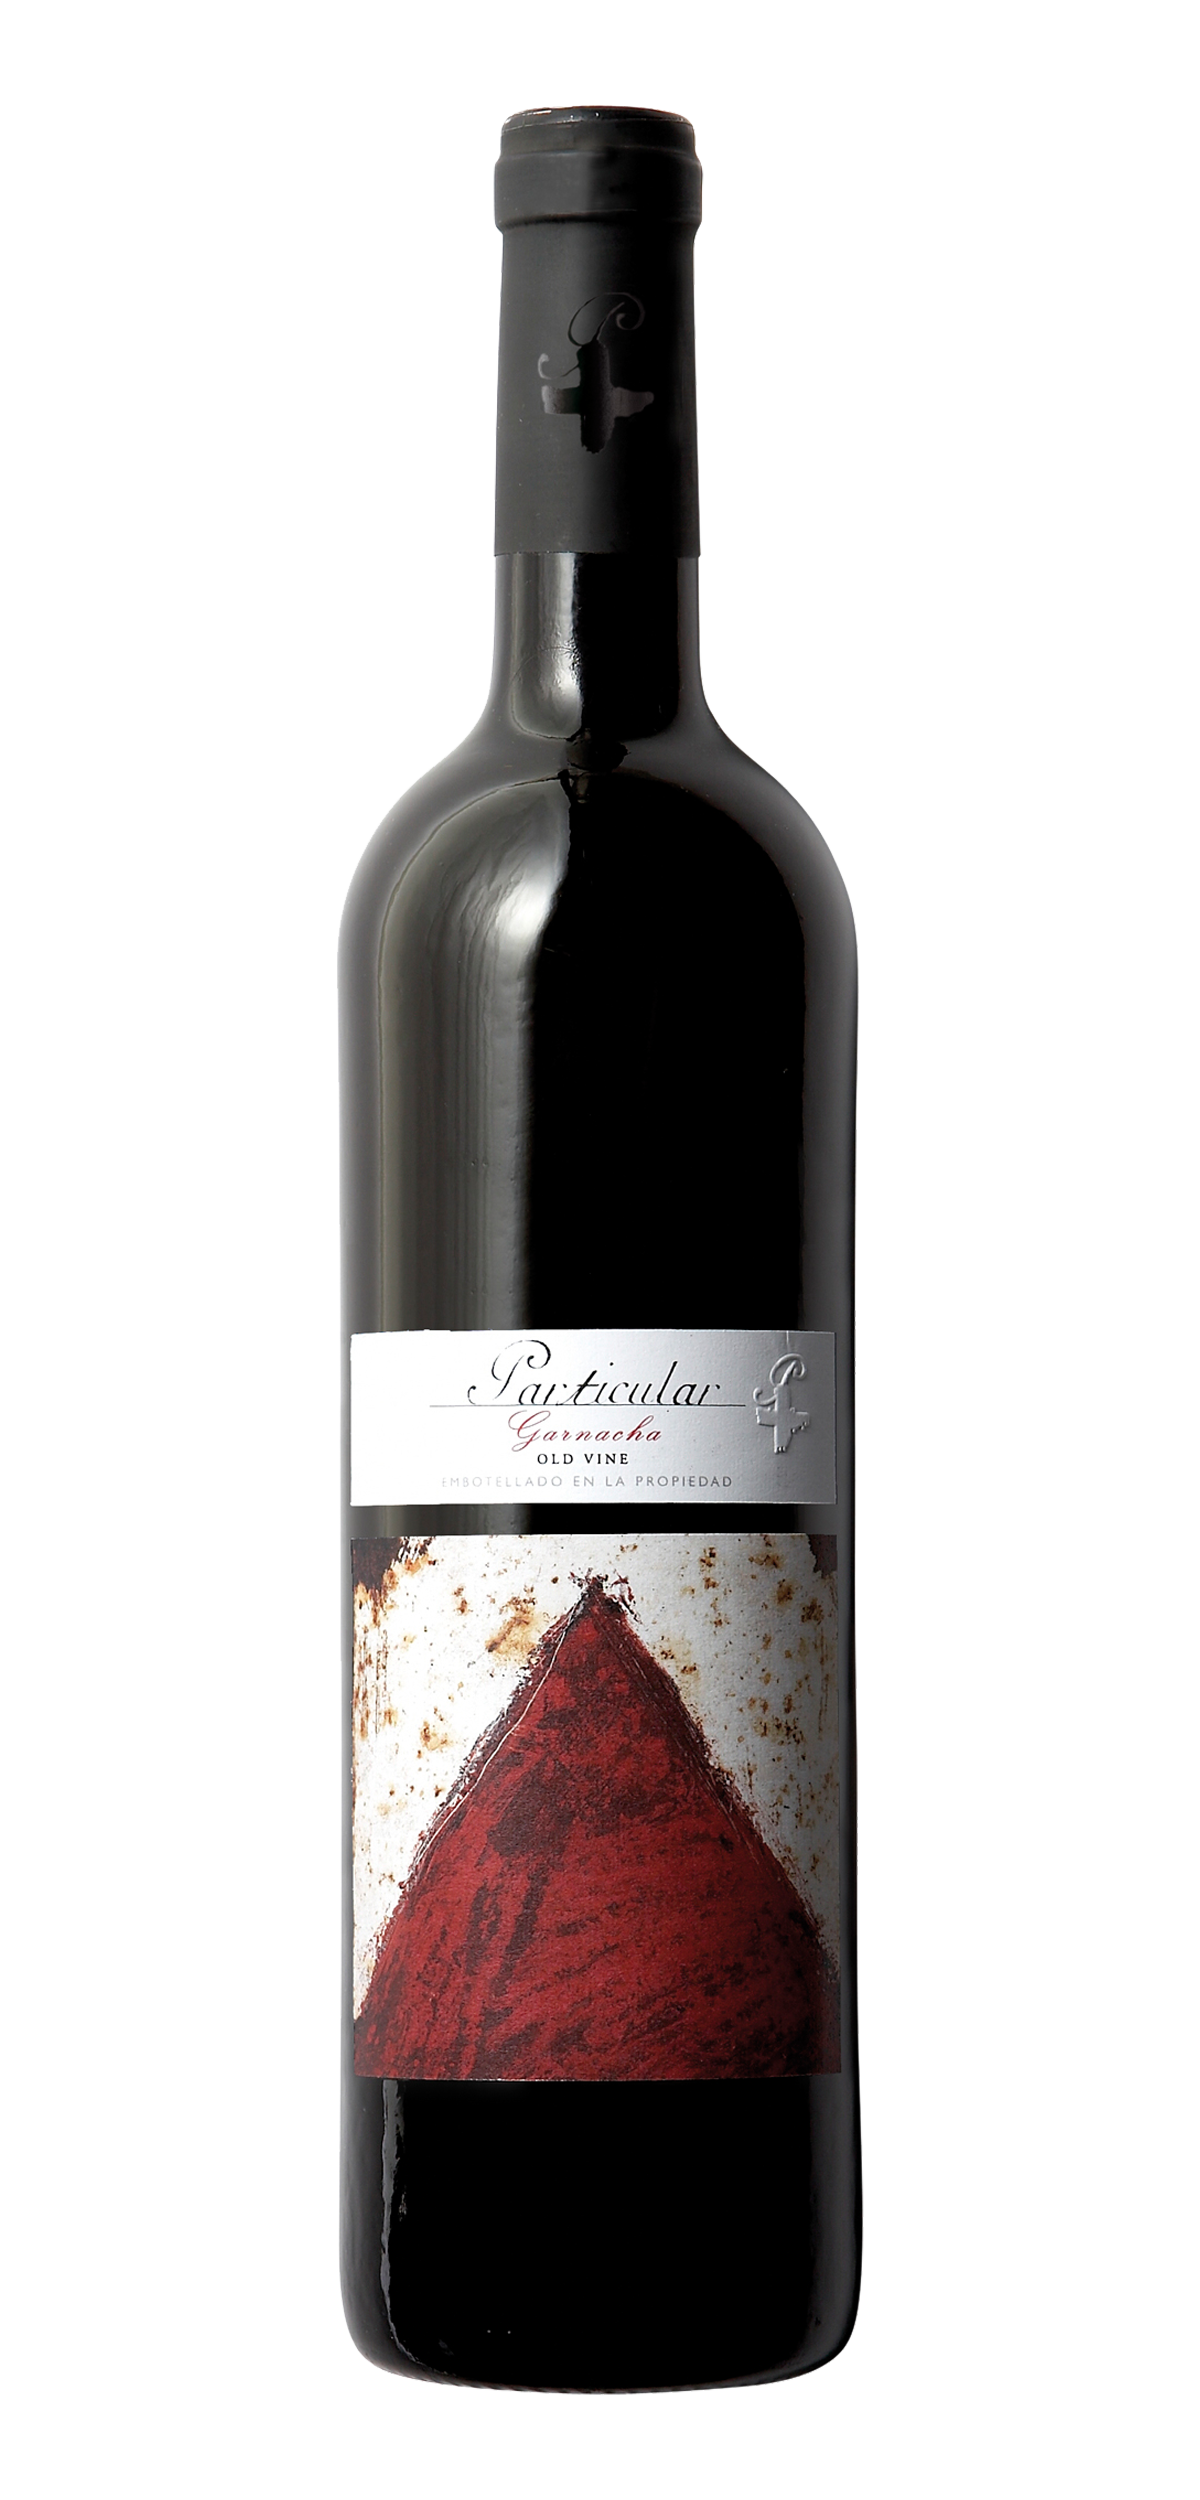 Particular Garnacha Old Vine wine bottle design